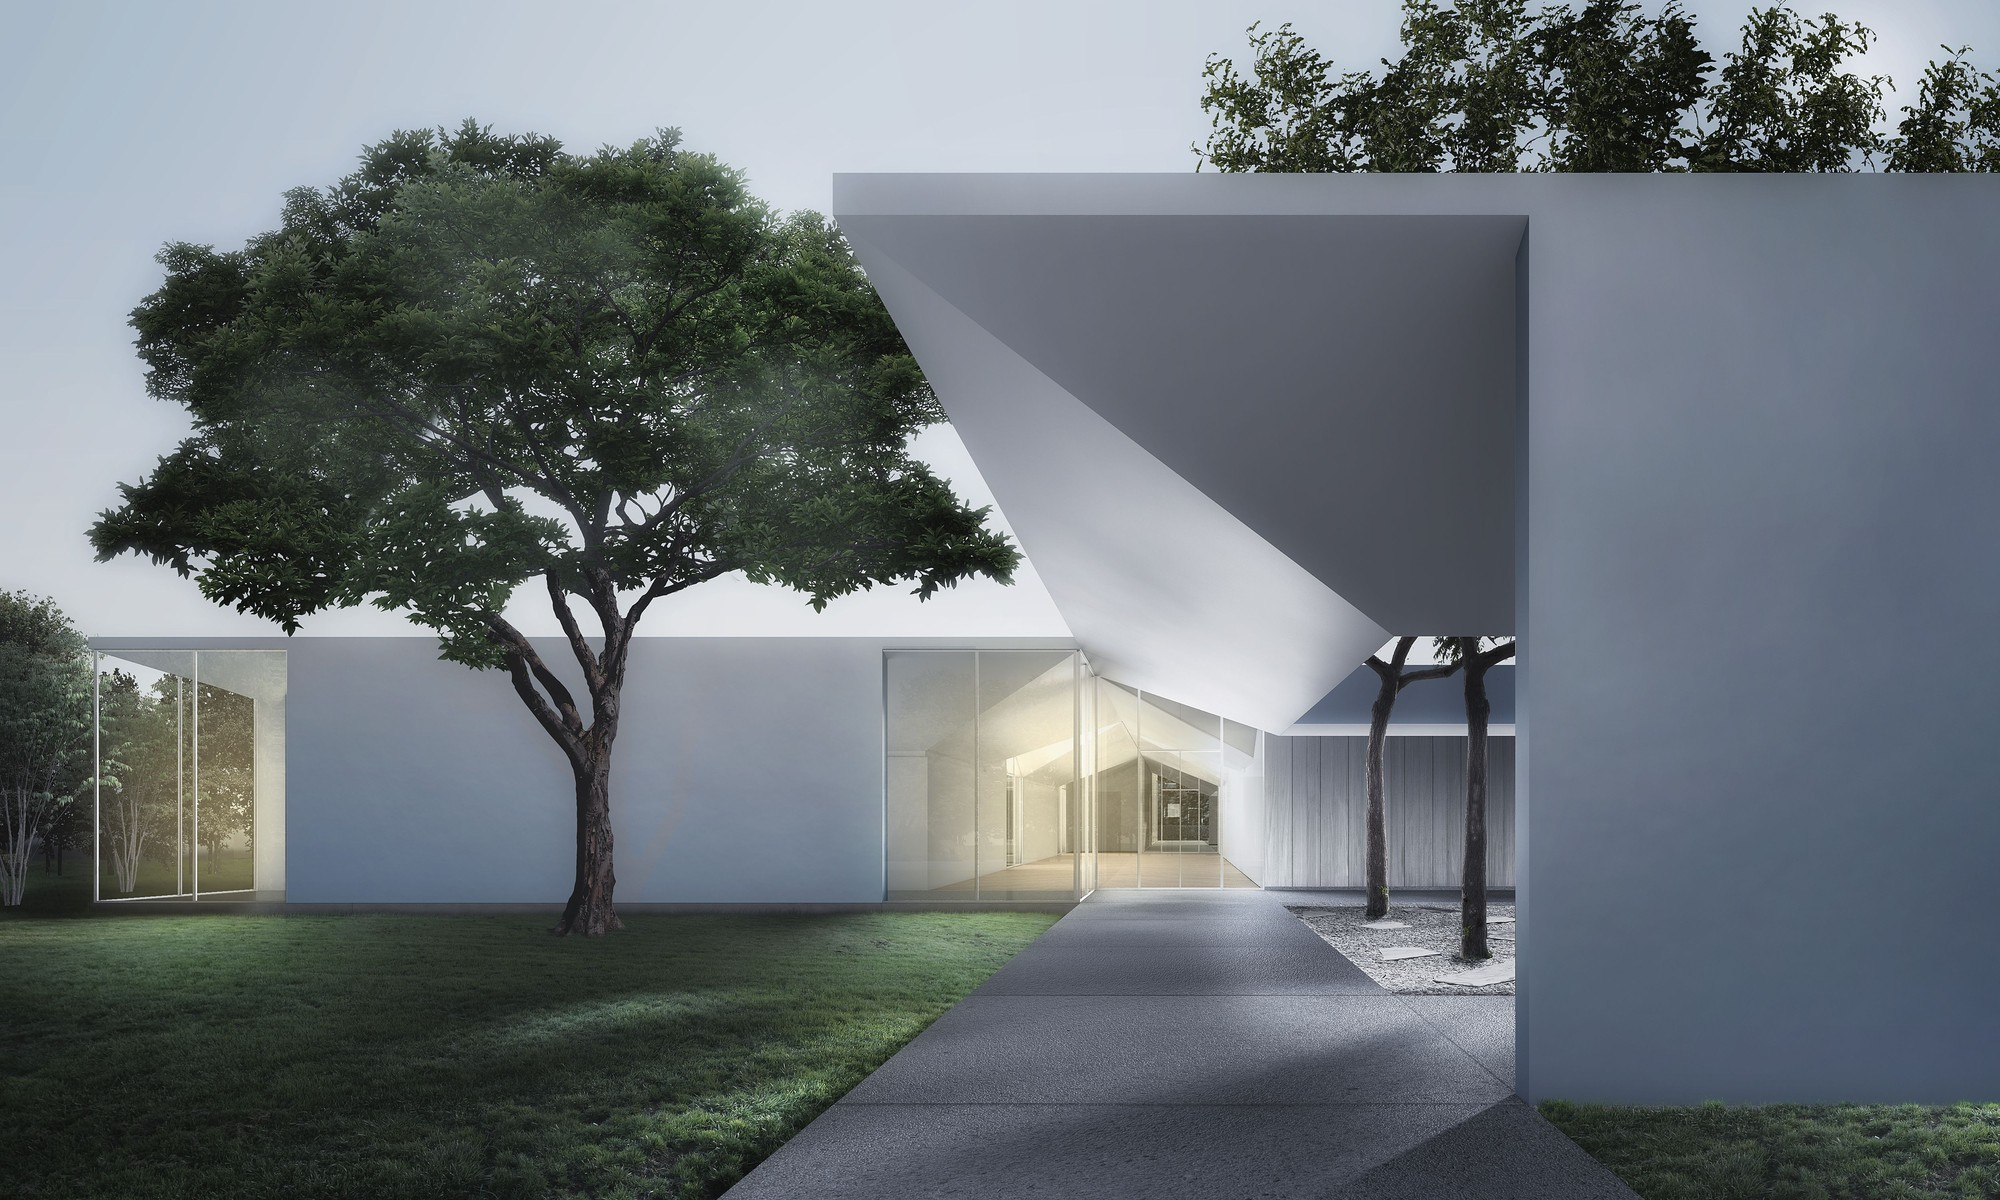 Johnston Marklee's Design for Menil Drawing Institute To Harness Gradients of Light, Menil Drawing Institute at dusk, looking past the west entrance courtyard. Image Courtesy of Johnston Marklee / The Menil Collection